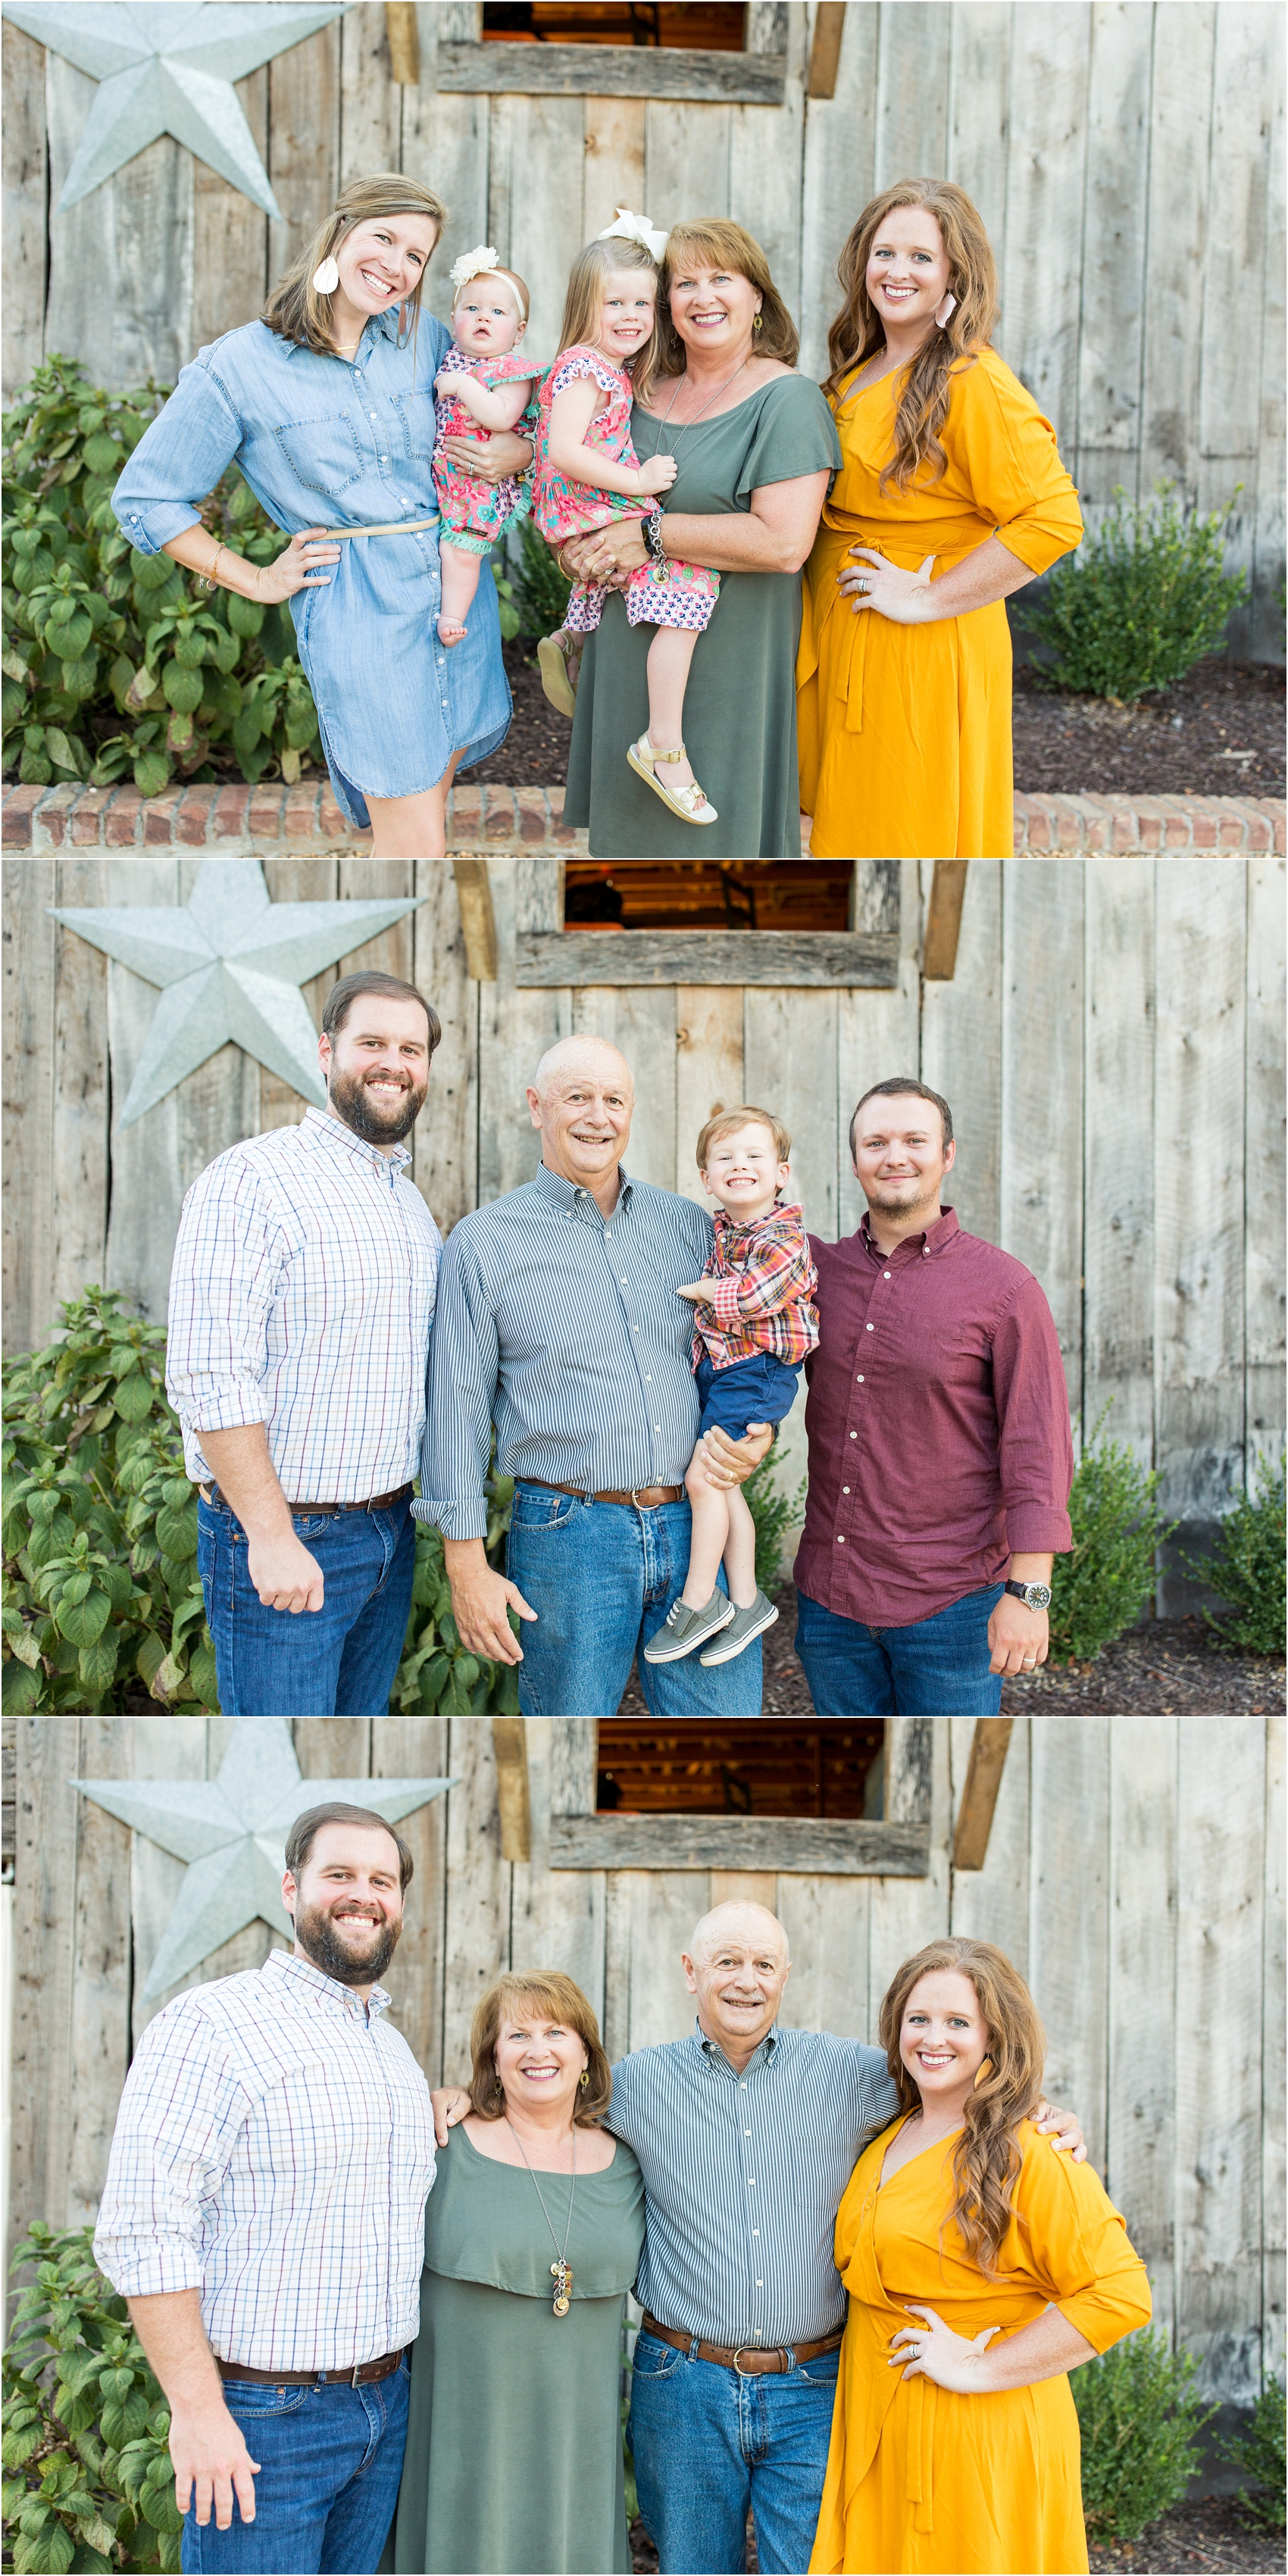 Savannah Eve Photography- Chambers Fam-19.jpg